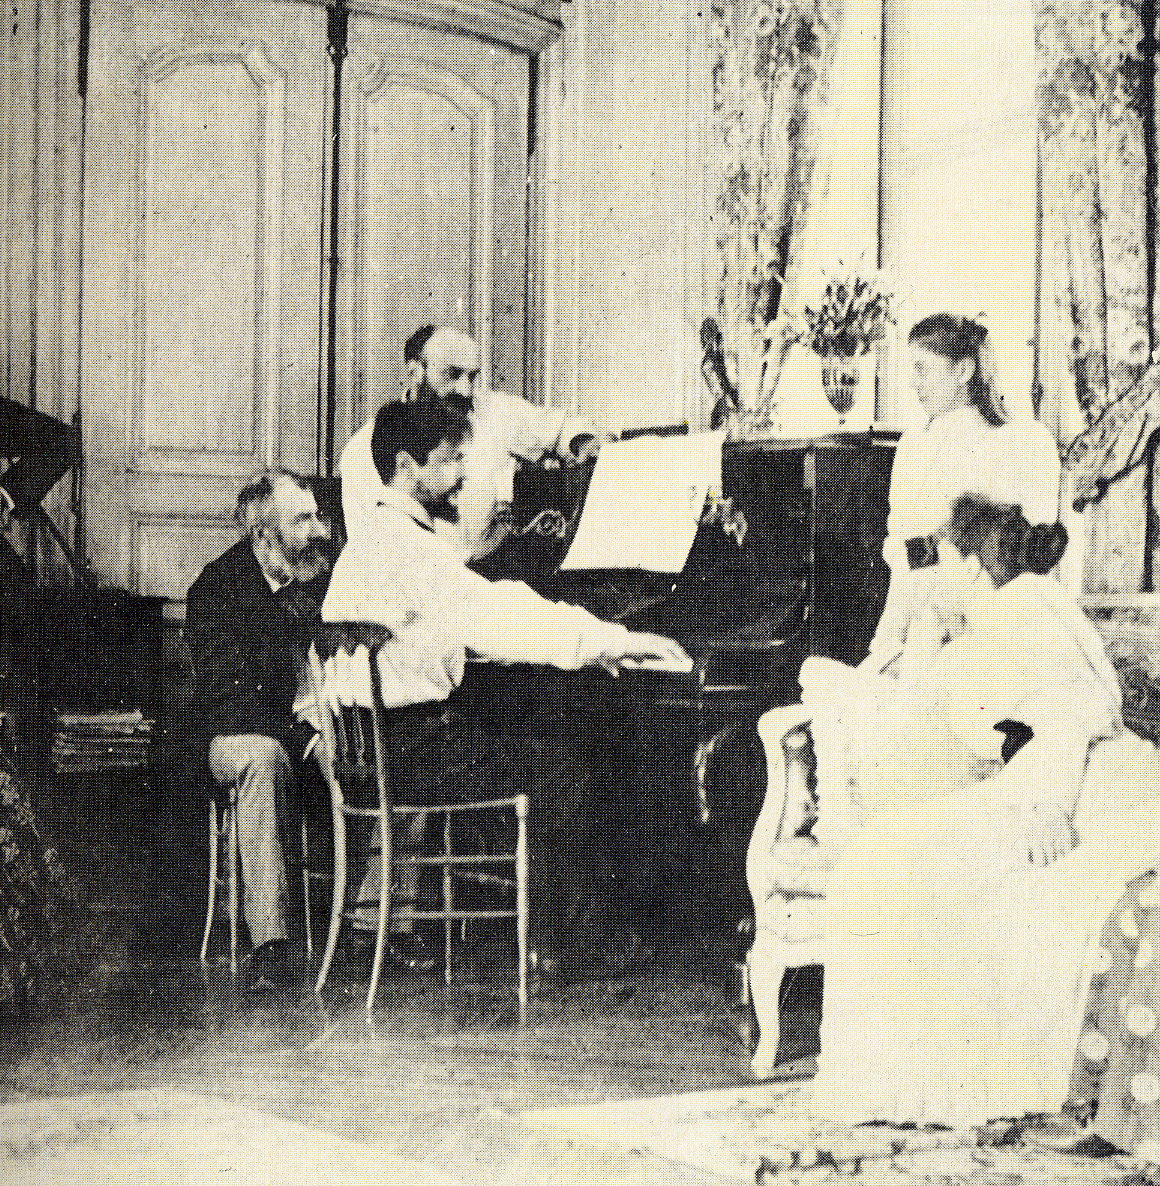 claude debussy Find claude debussy bio, music, credits, awards, & streaming links on allmusic - debussy was an influential composer of the late.